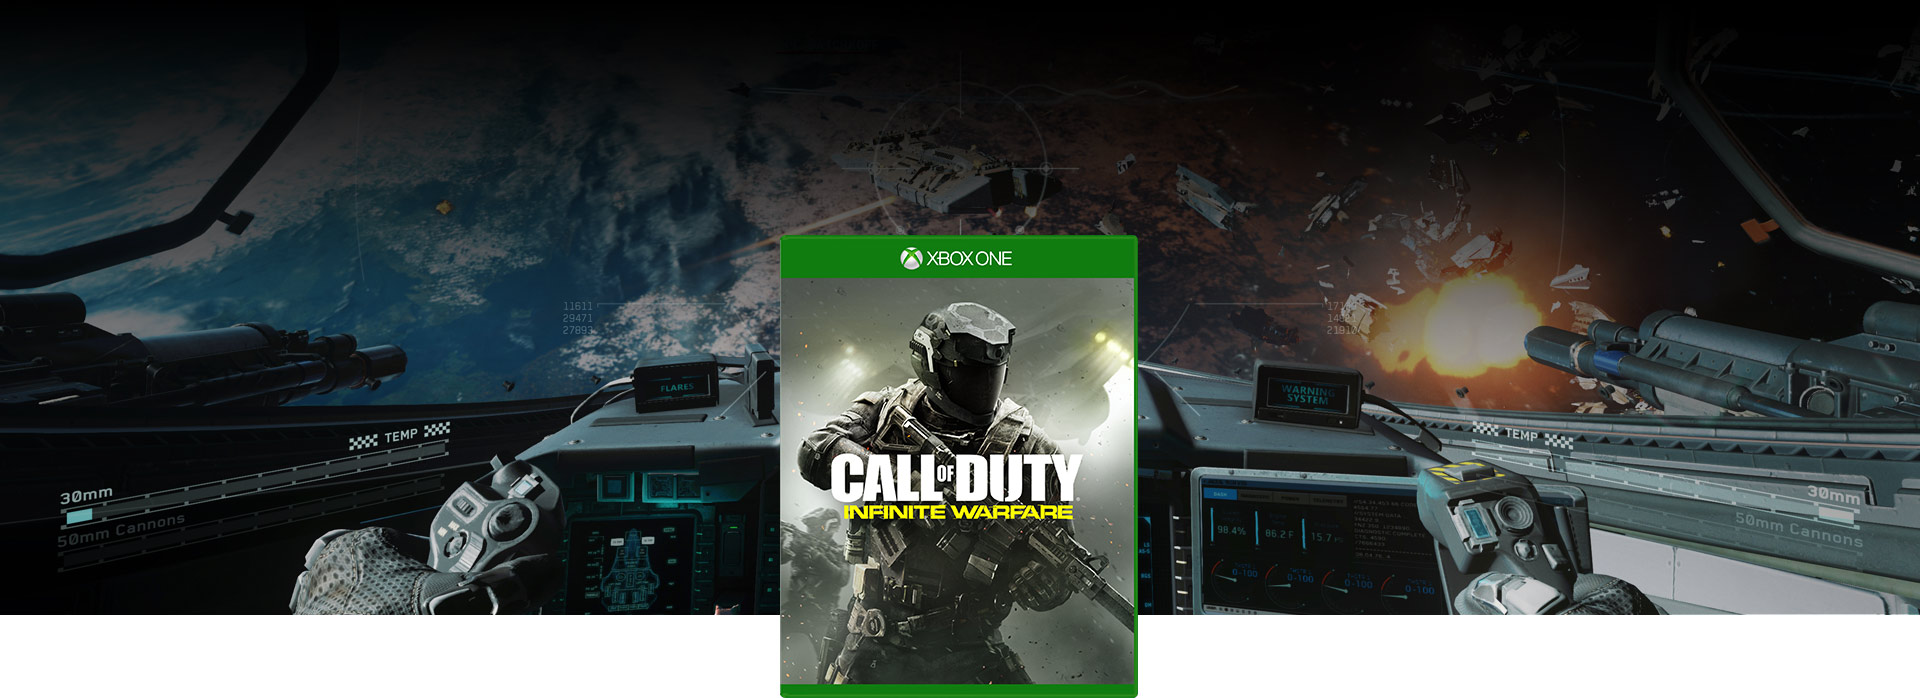 Call of Duty Infinite Warfare - boxshot